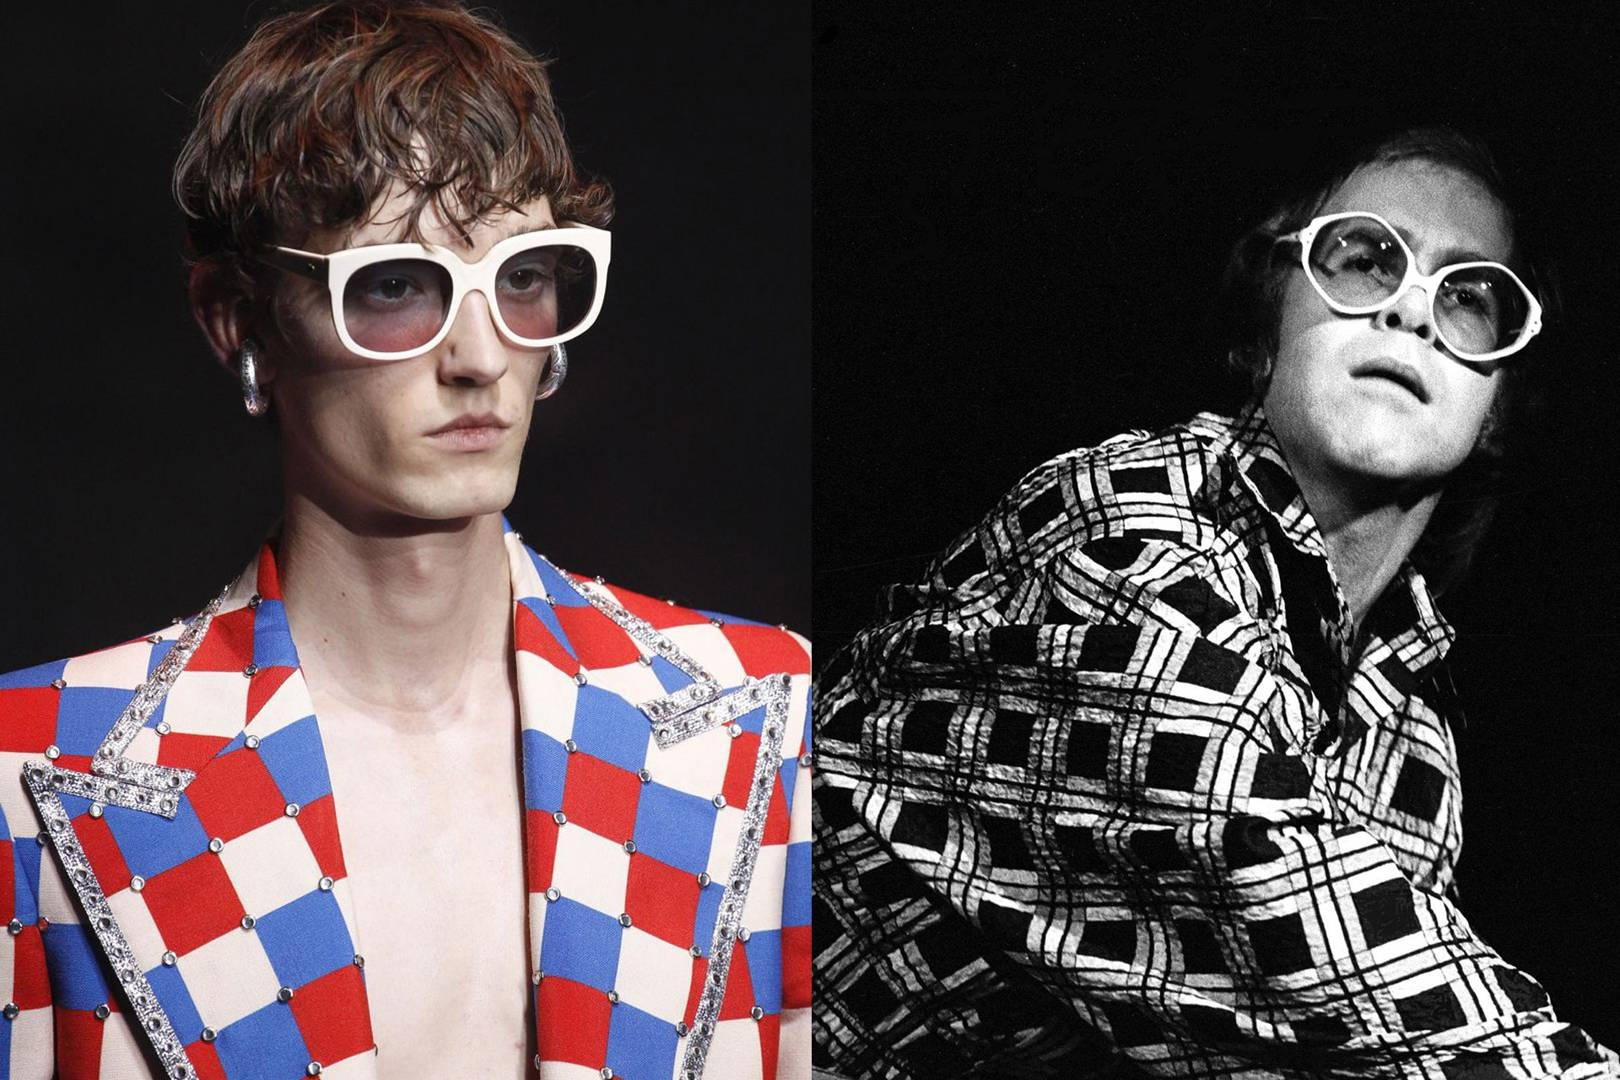 c60eafaf7 A Tribute To Alessandro Michele's Elton John-Inspired Gucci Collection |  British Vogue